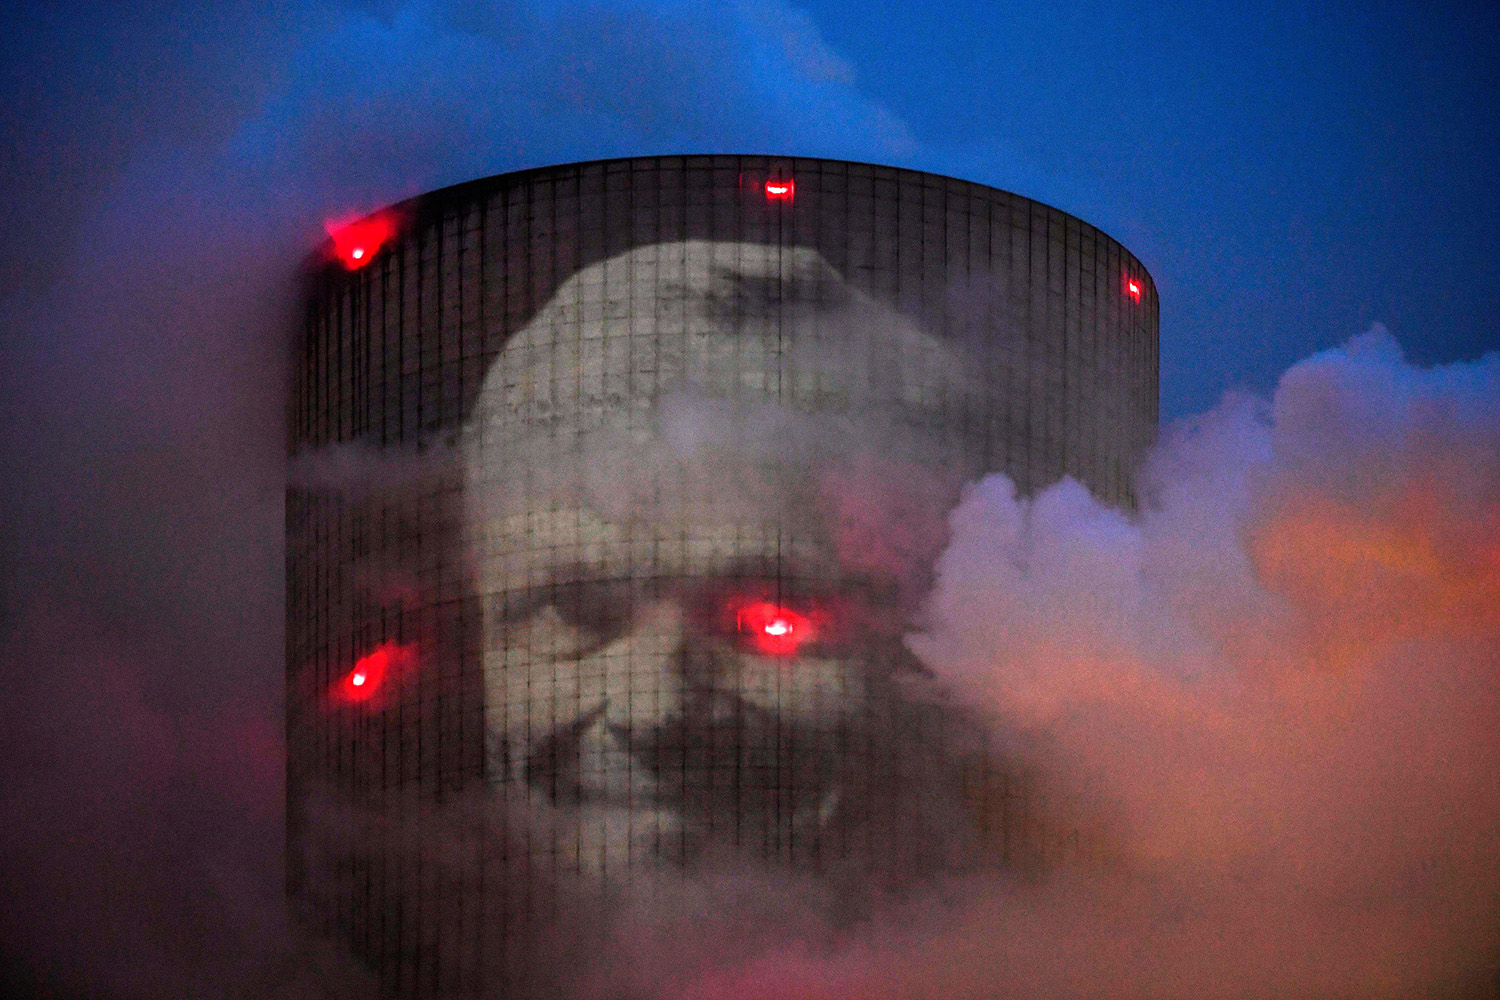 Greenpeace activists project an image of Pekka Lundmark, president and CEO of Finnish utility company Fortum, onto the cooling tower of the coal-fired power plant Datteln 4 of Uniper in Datteln, western Germany, on Feb. 26. INA FASSBENDER/AFP via Getty Images